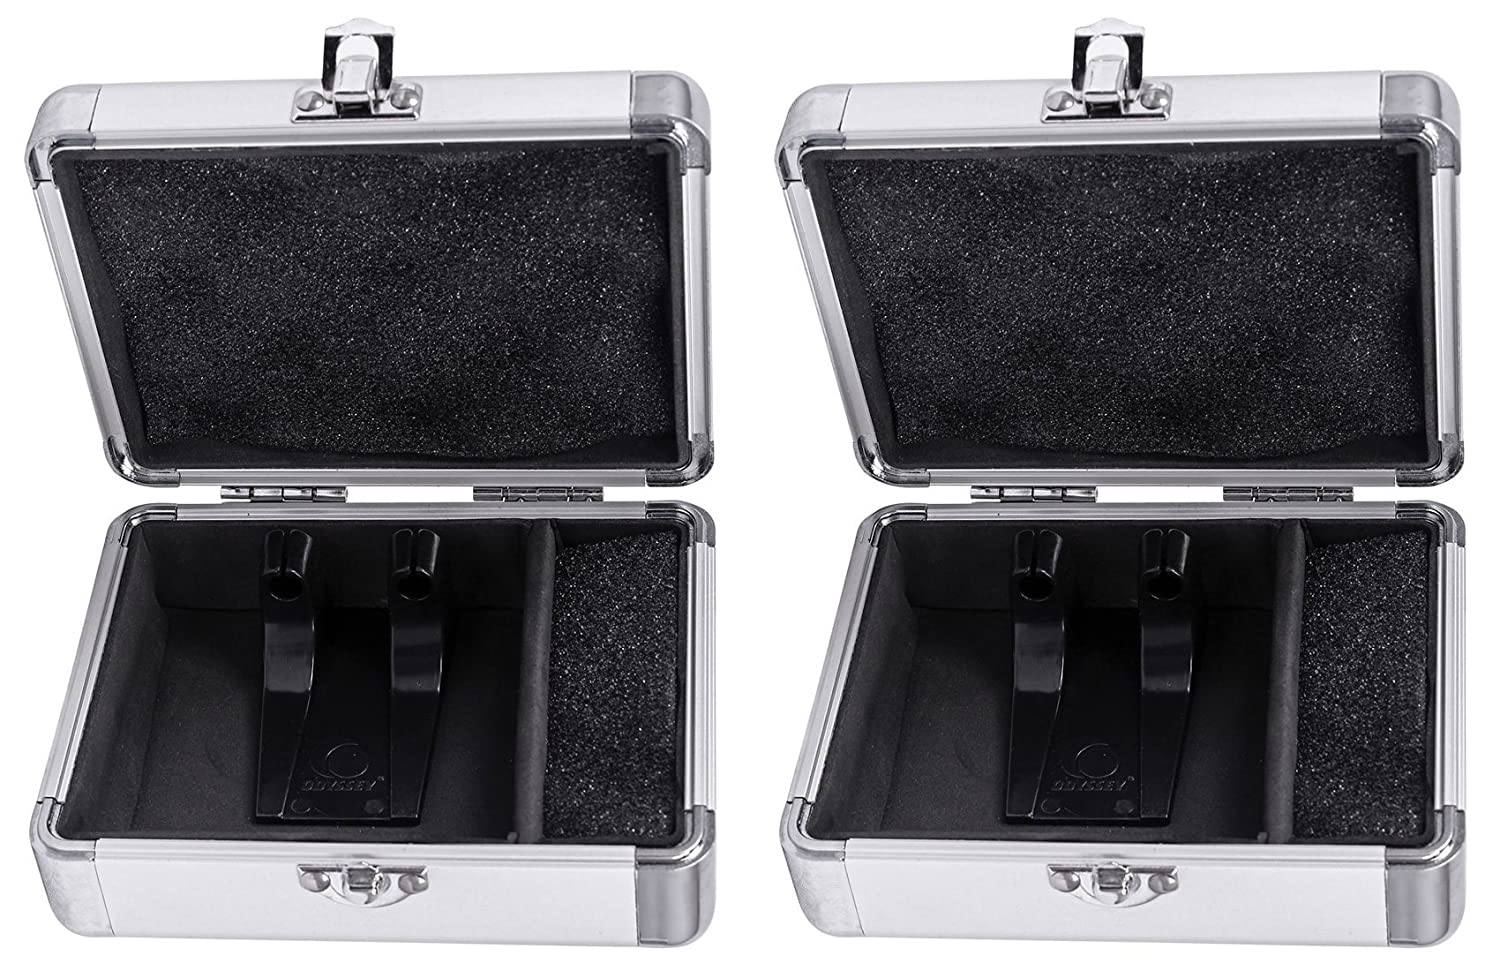 2) Odyssey KCC2PR2SL KROM PRO2 2x Turntable Needle Cartridge Travel Cases SIlver (2) KCC2PR2SL